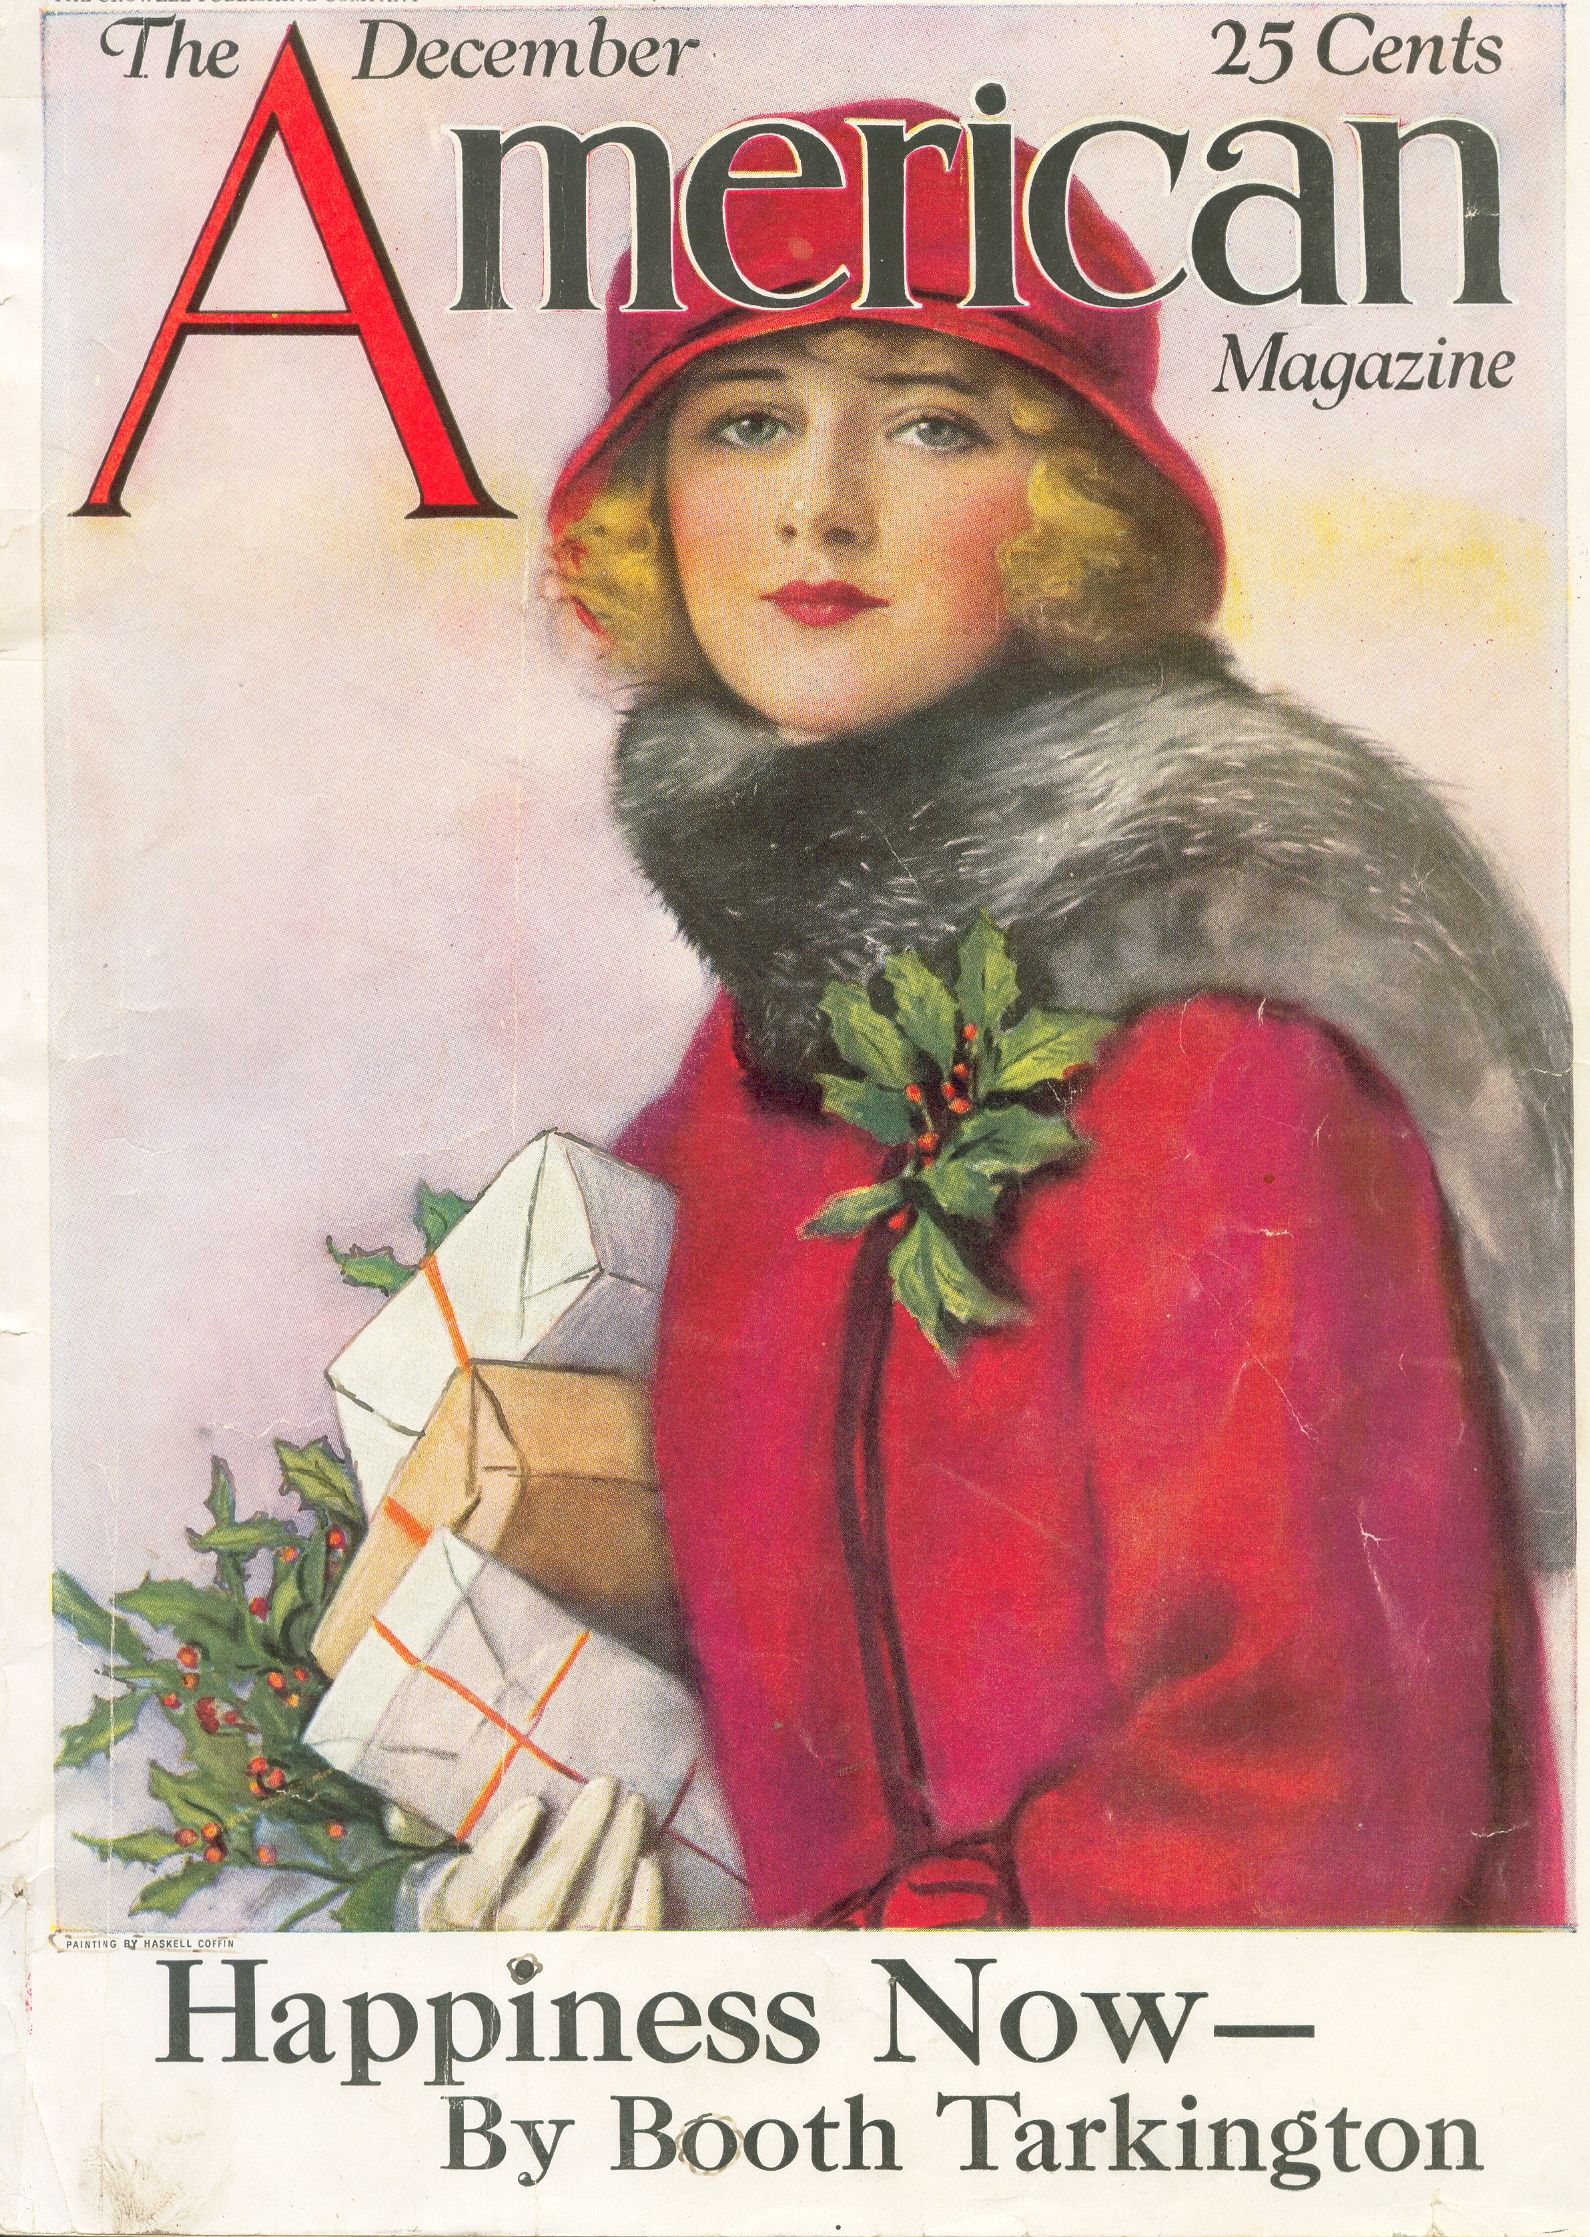 The American Magazine, December 1925. Haskell Coffin